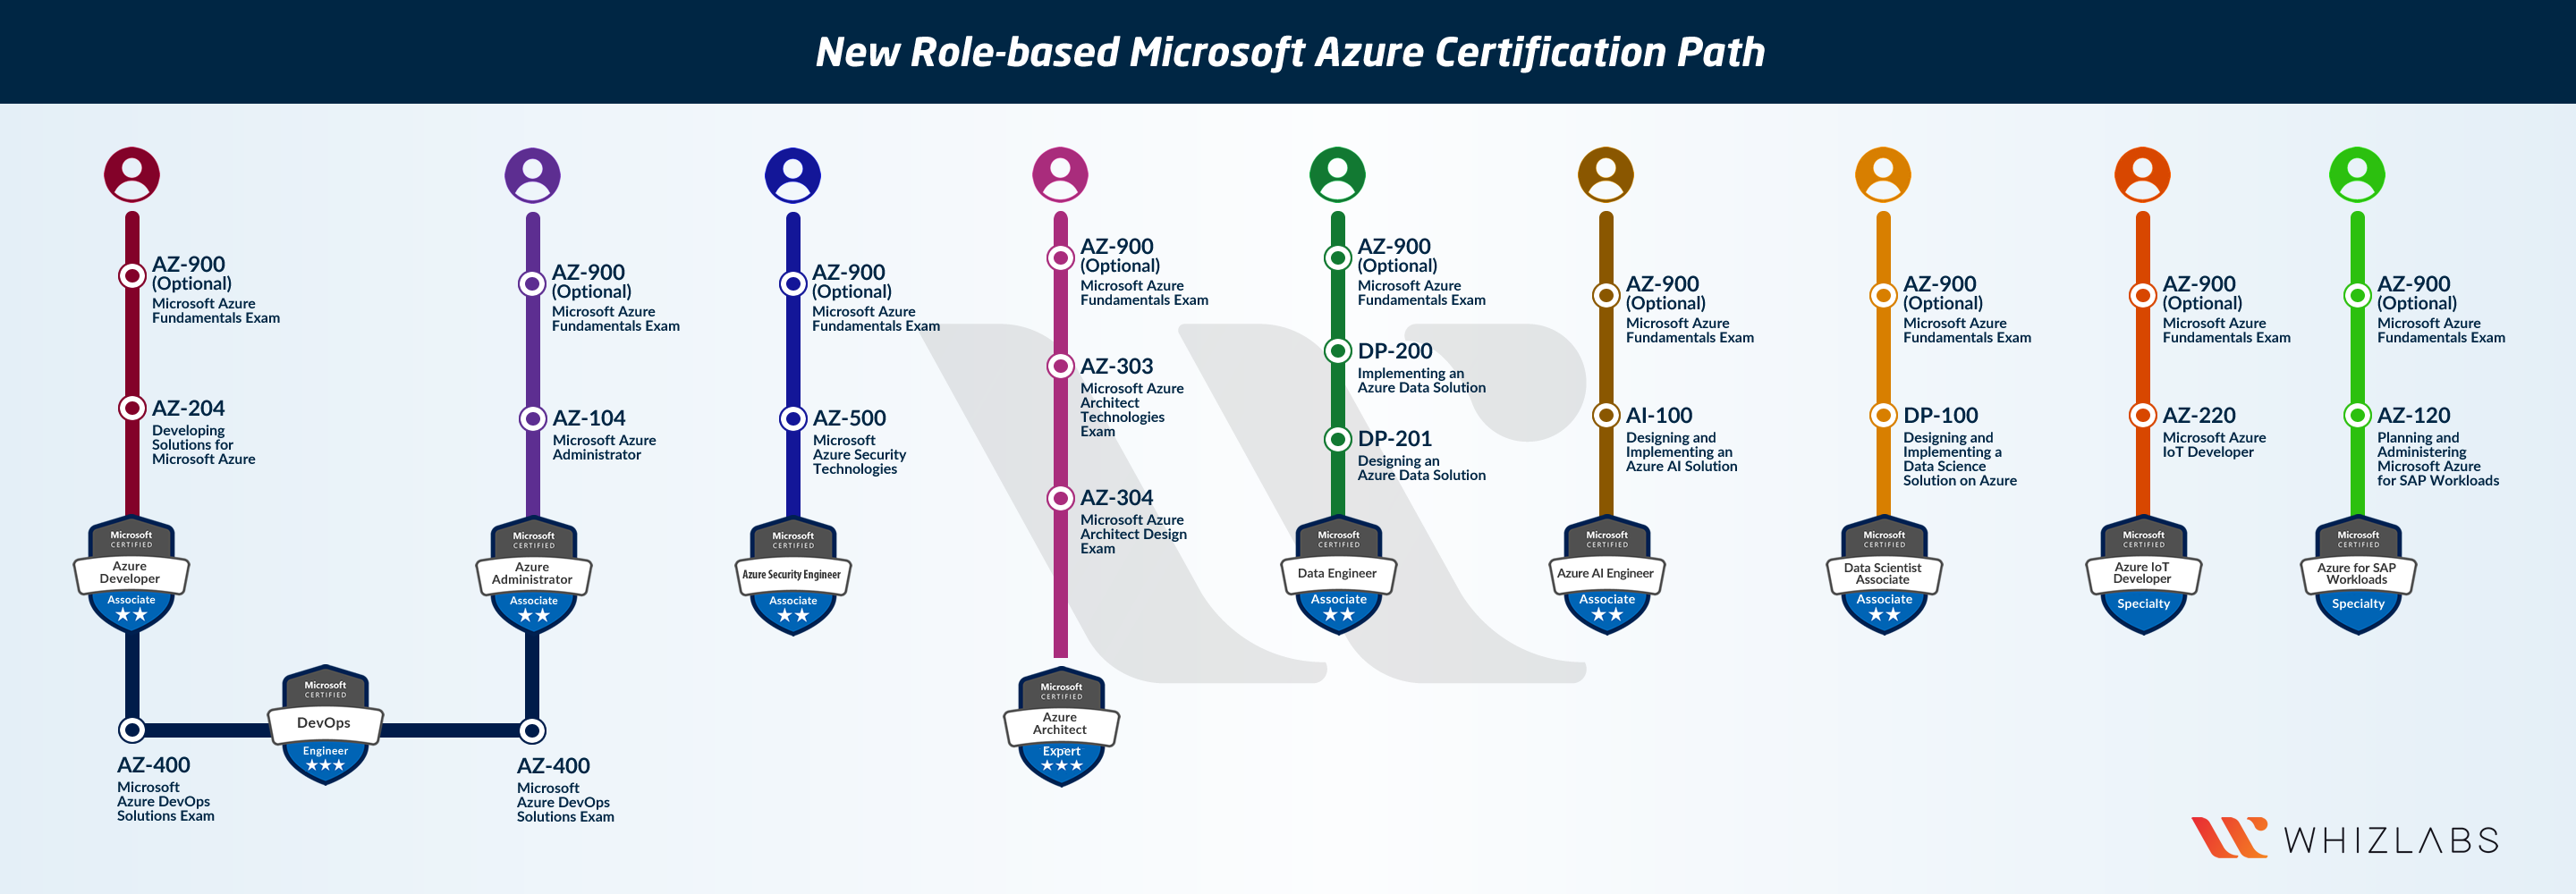 Microsoft Azure Cloud Services Certification Path